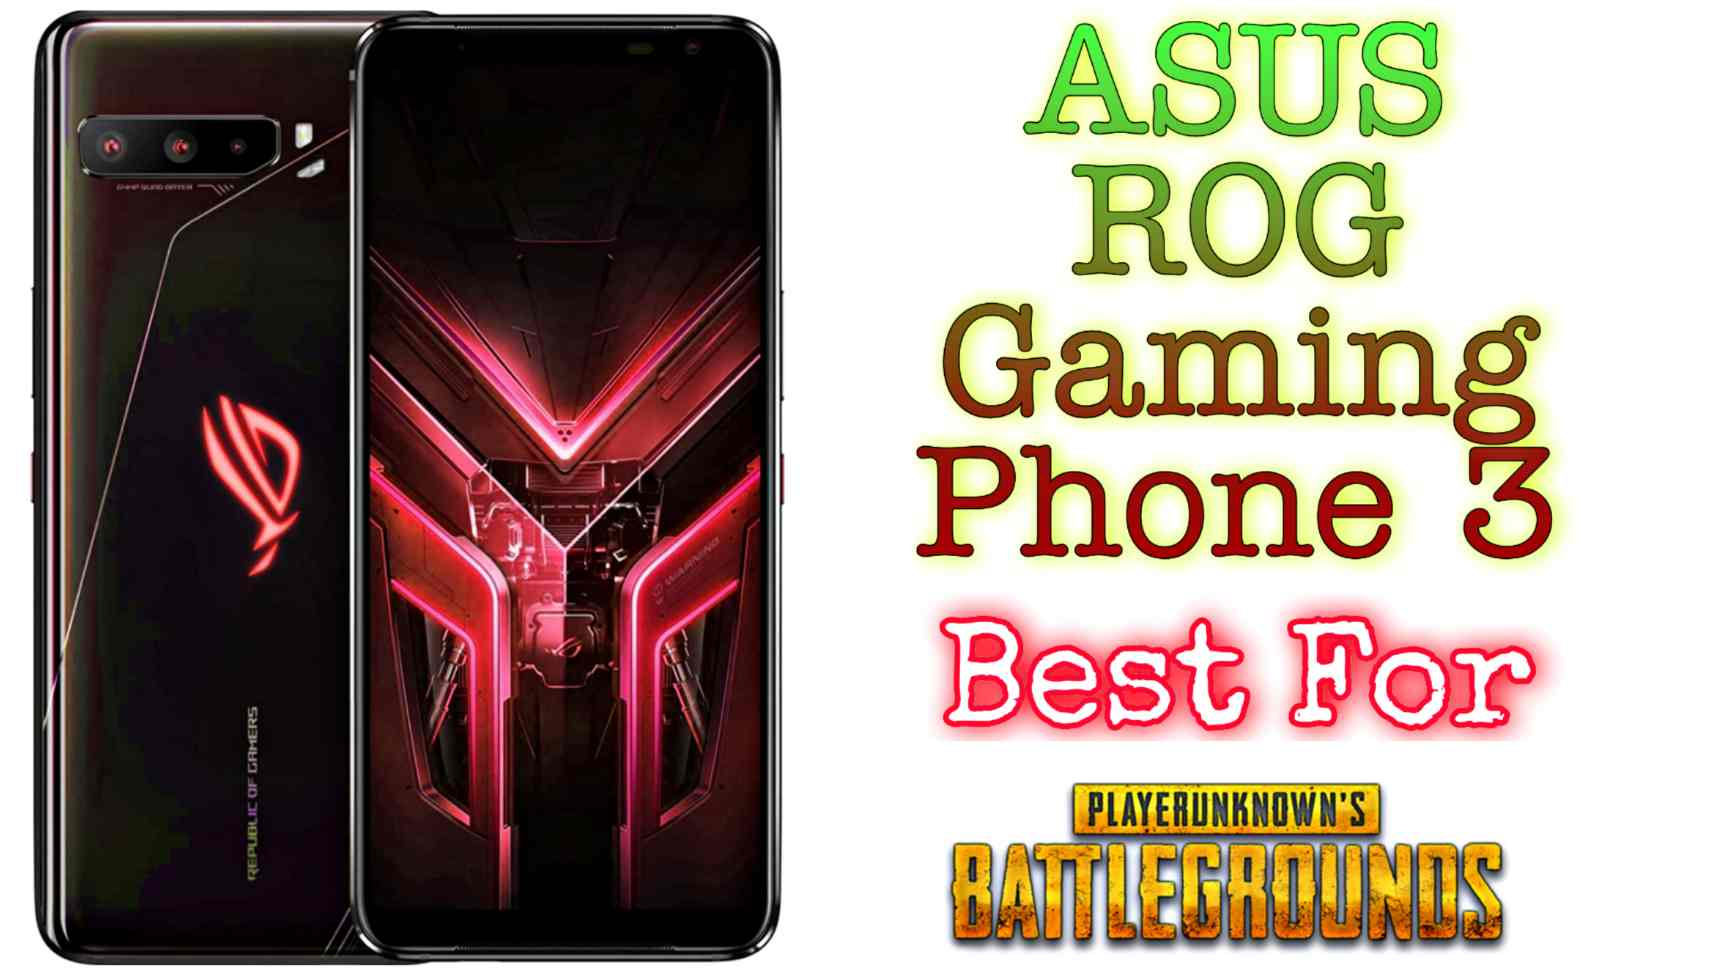 Assus RoG 3 for gaming